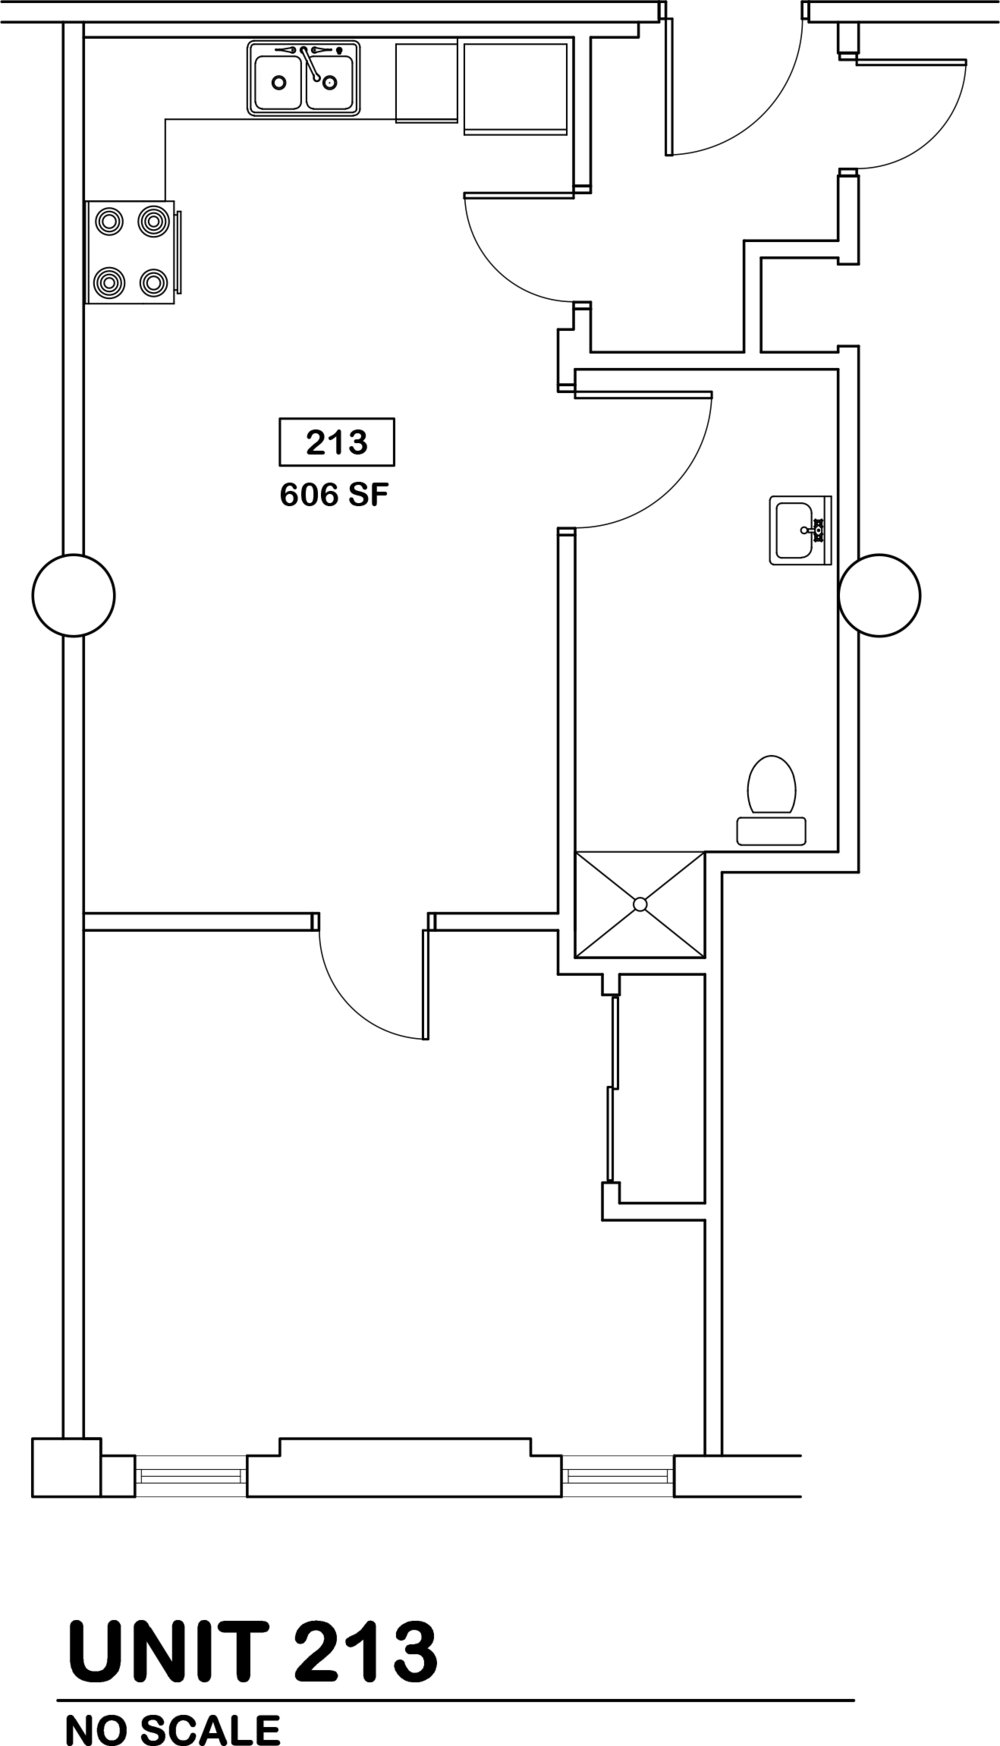 1 bed / 1 bath   $510 / 606 sq ft